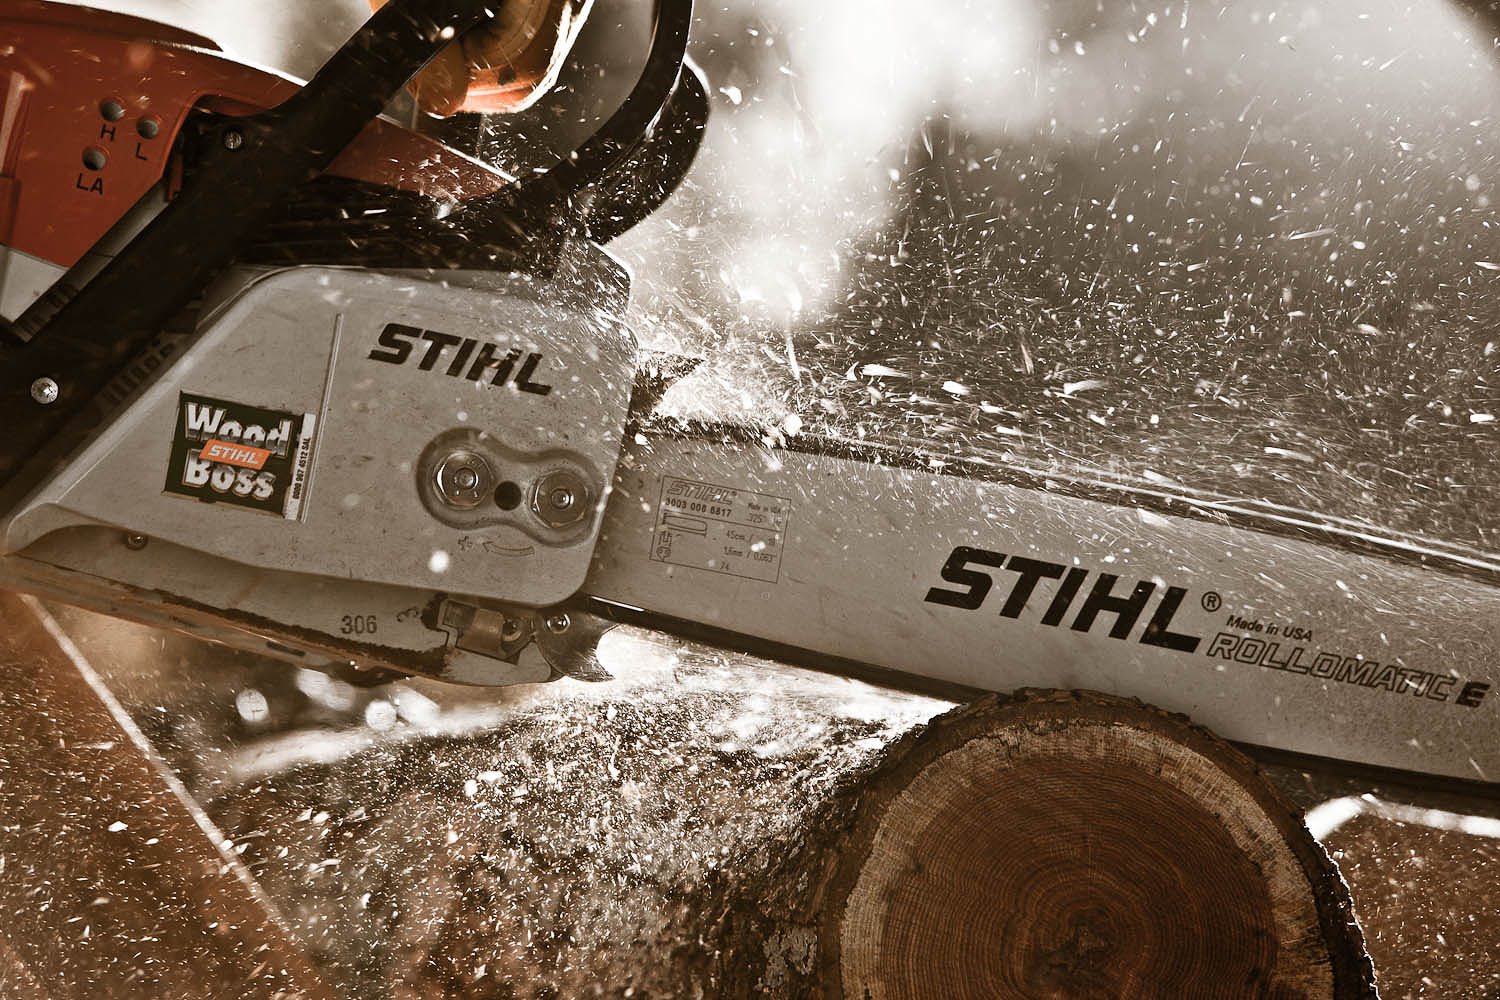 STIHL Chainsaw MS271 | John Fedele Product Photography